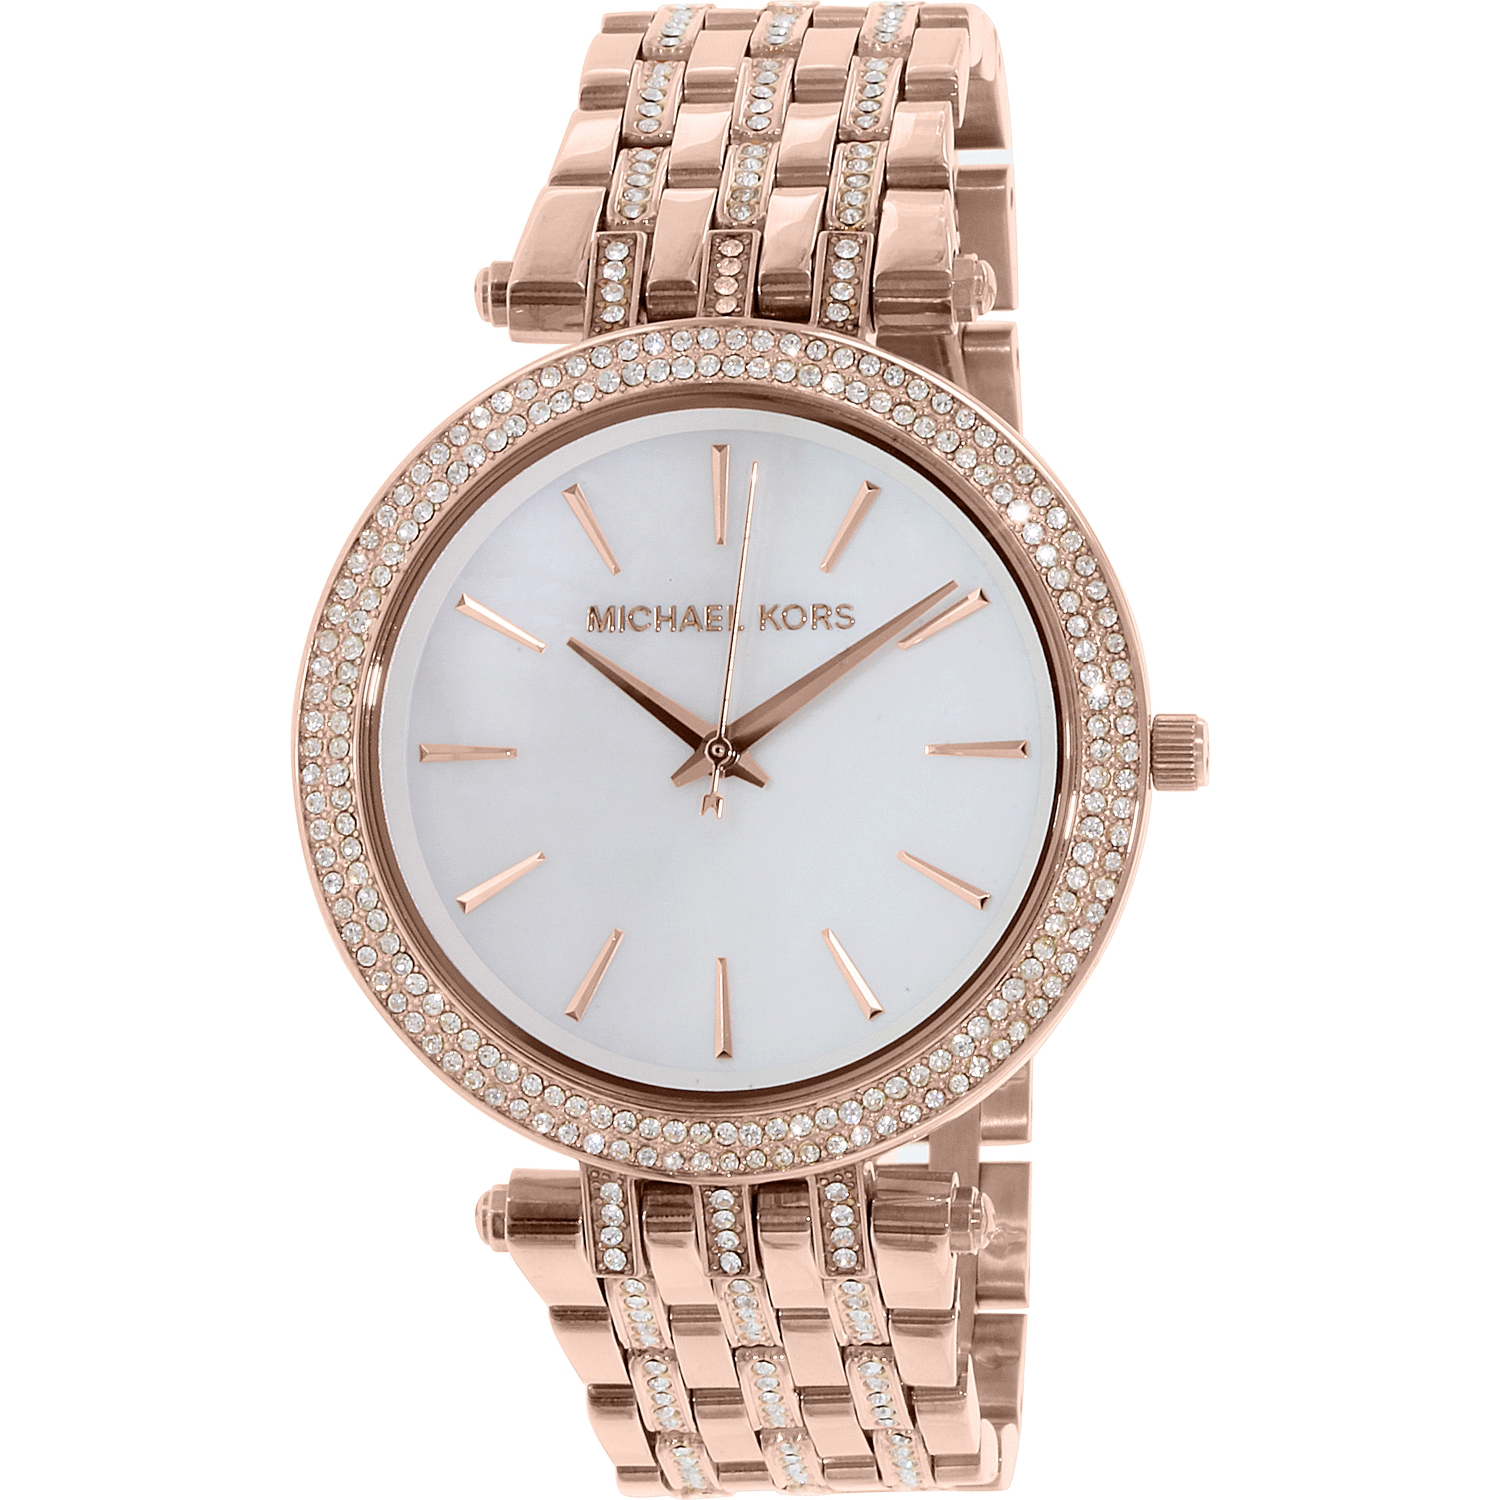 Michael Kors Women's Darci MK3220 Rose Gold Stainless-Steel Plated Japanese Quartz Fashion Watch